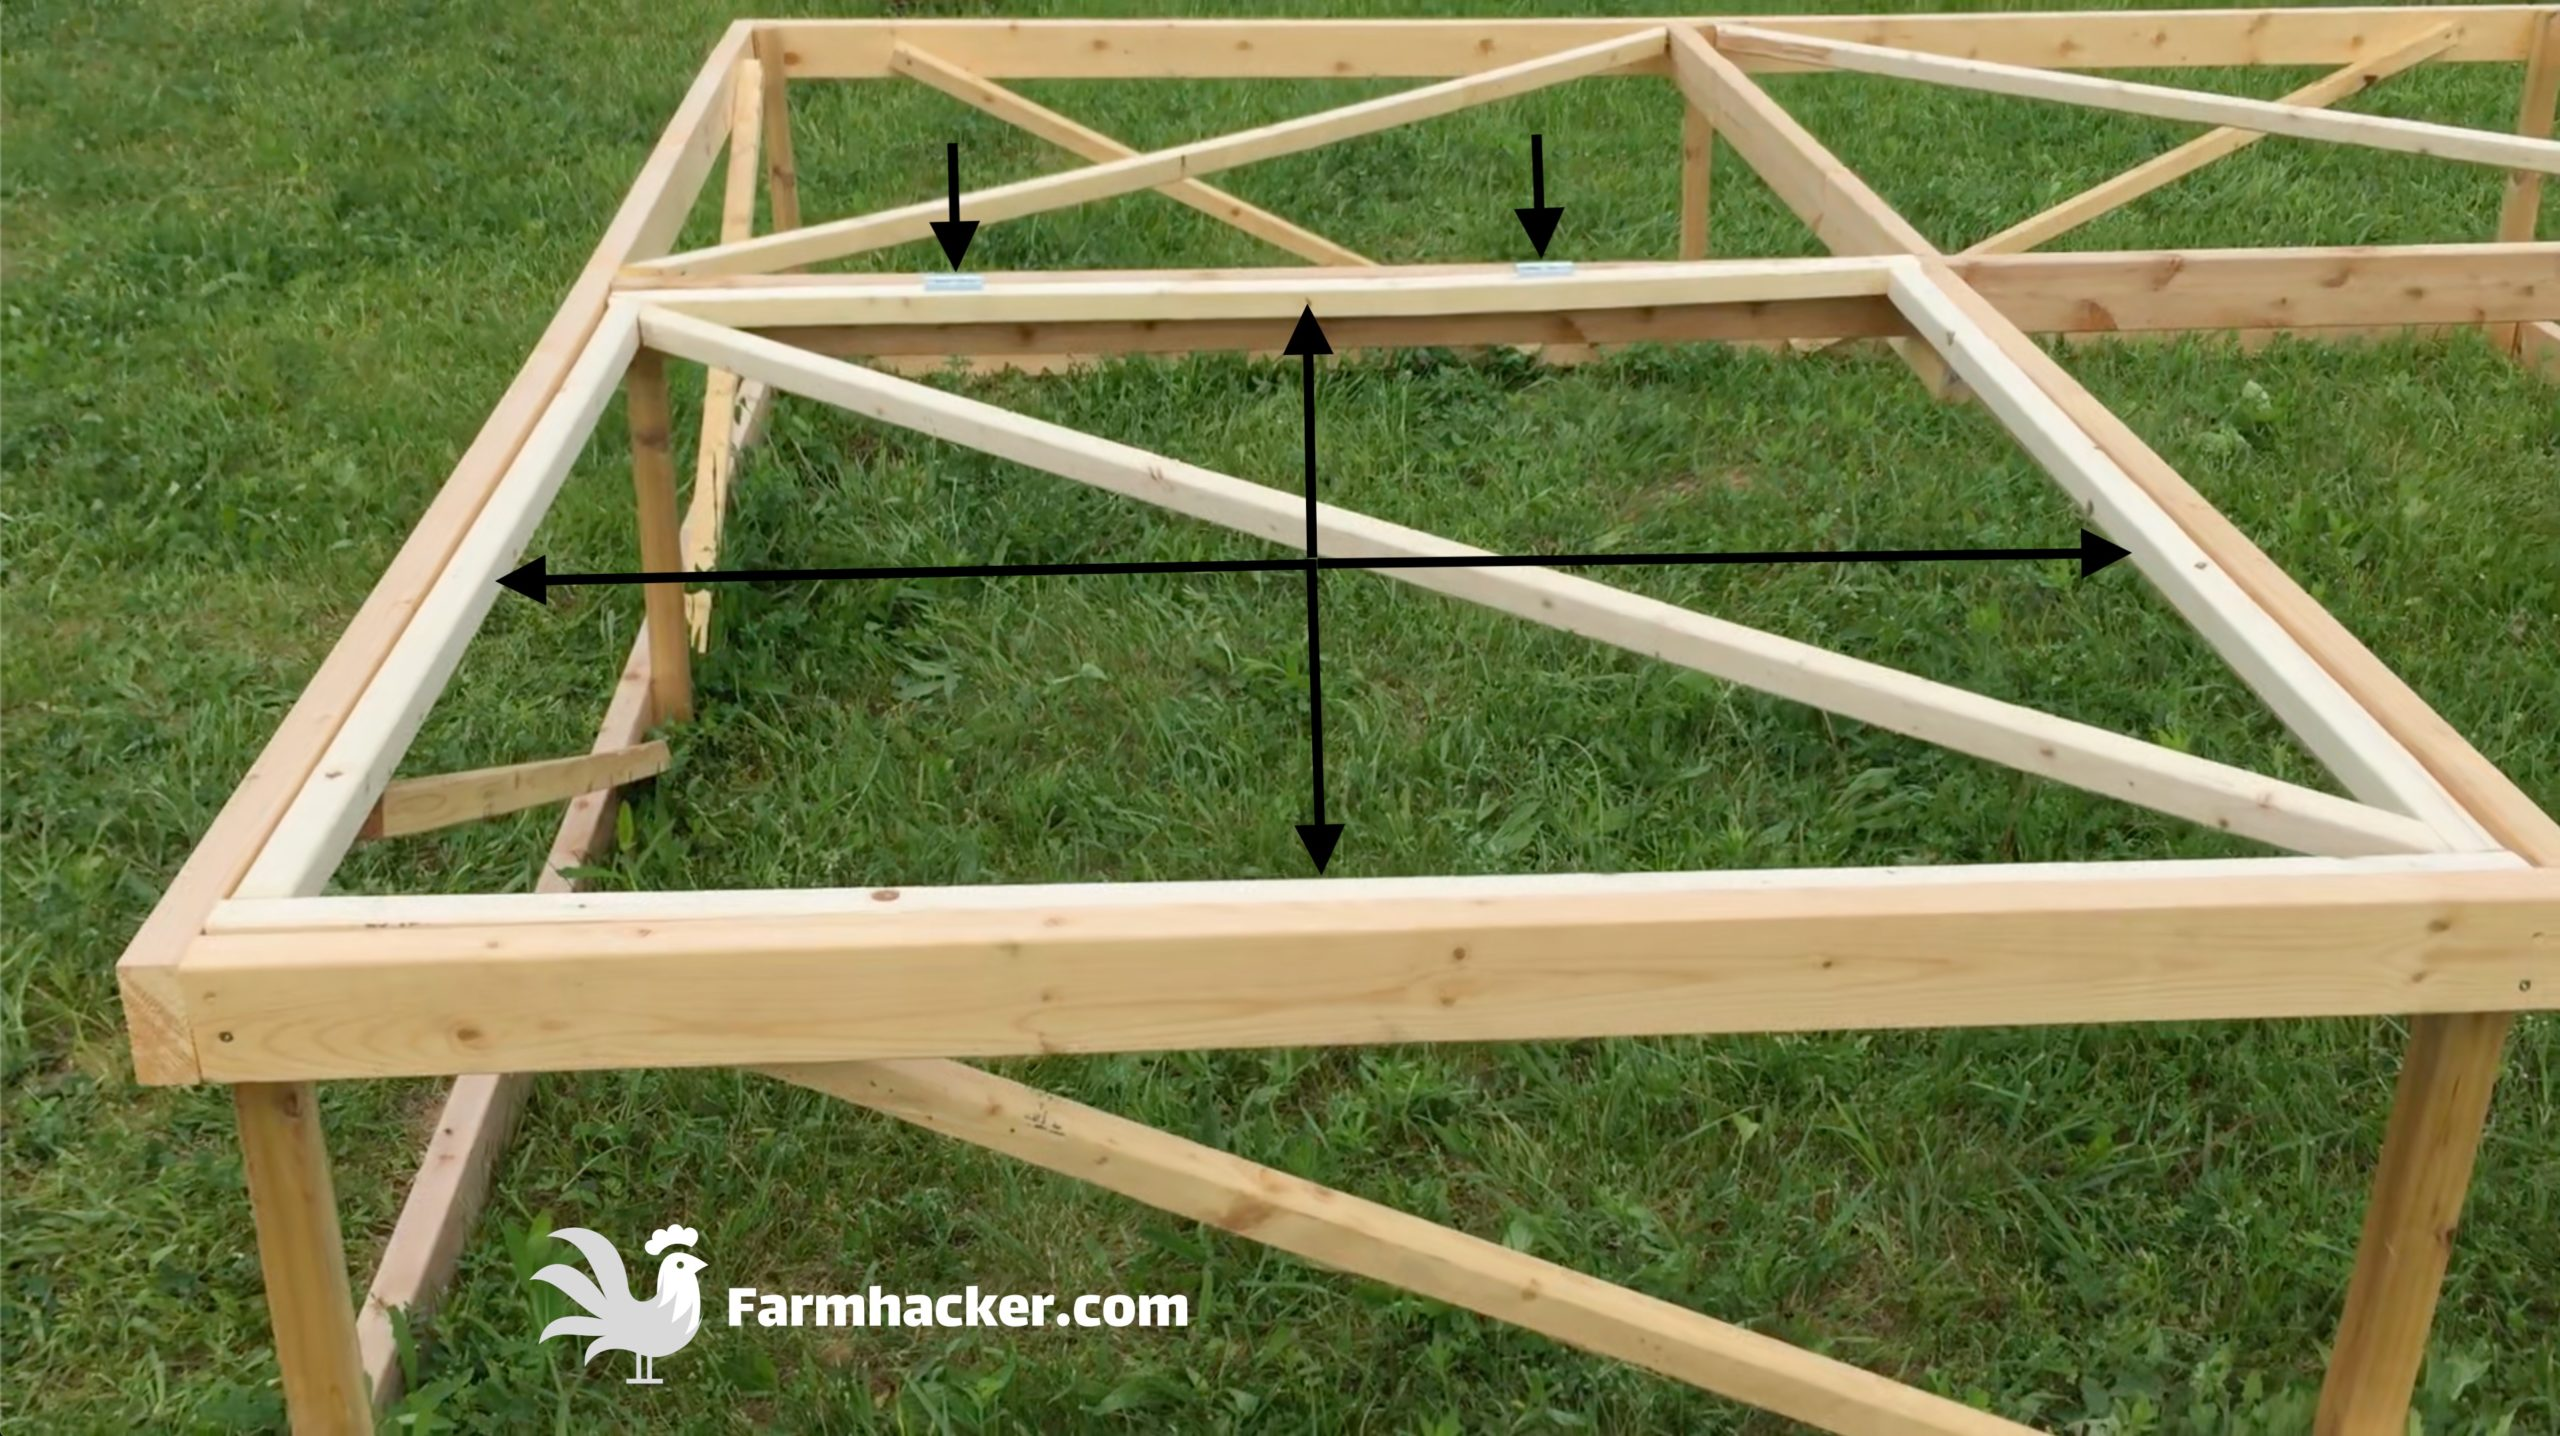 How to Build a Joel Salatin Style Chicken Tractor Step 3.1